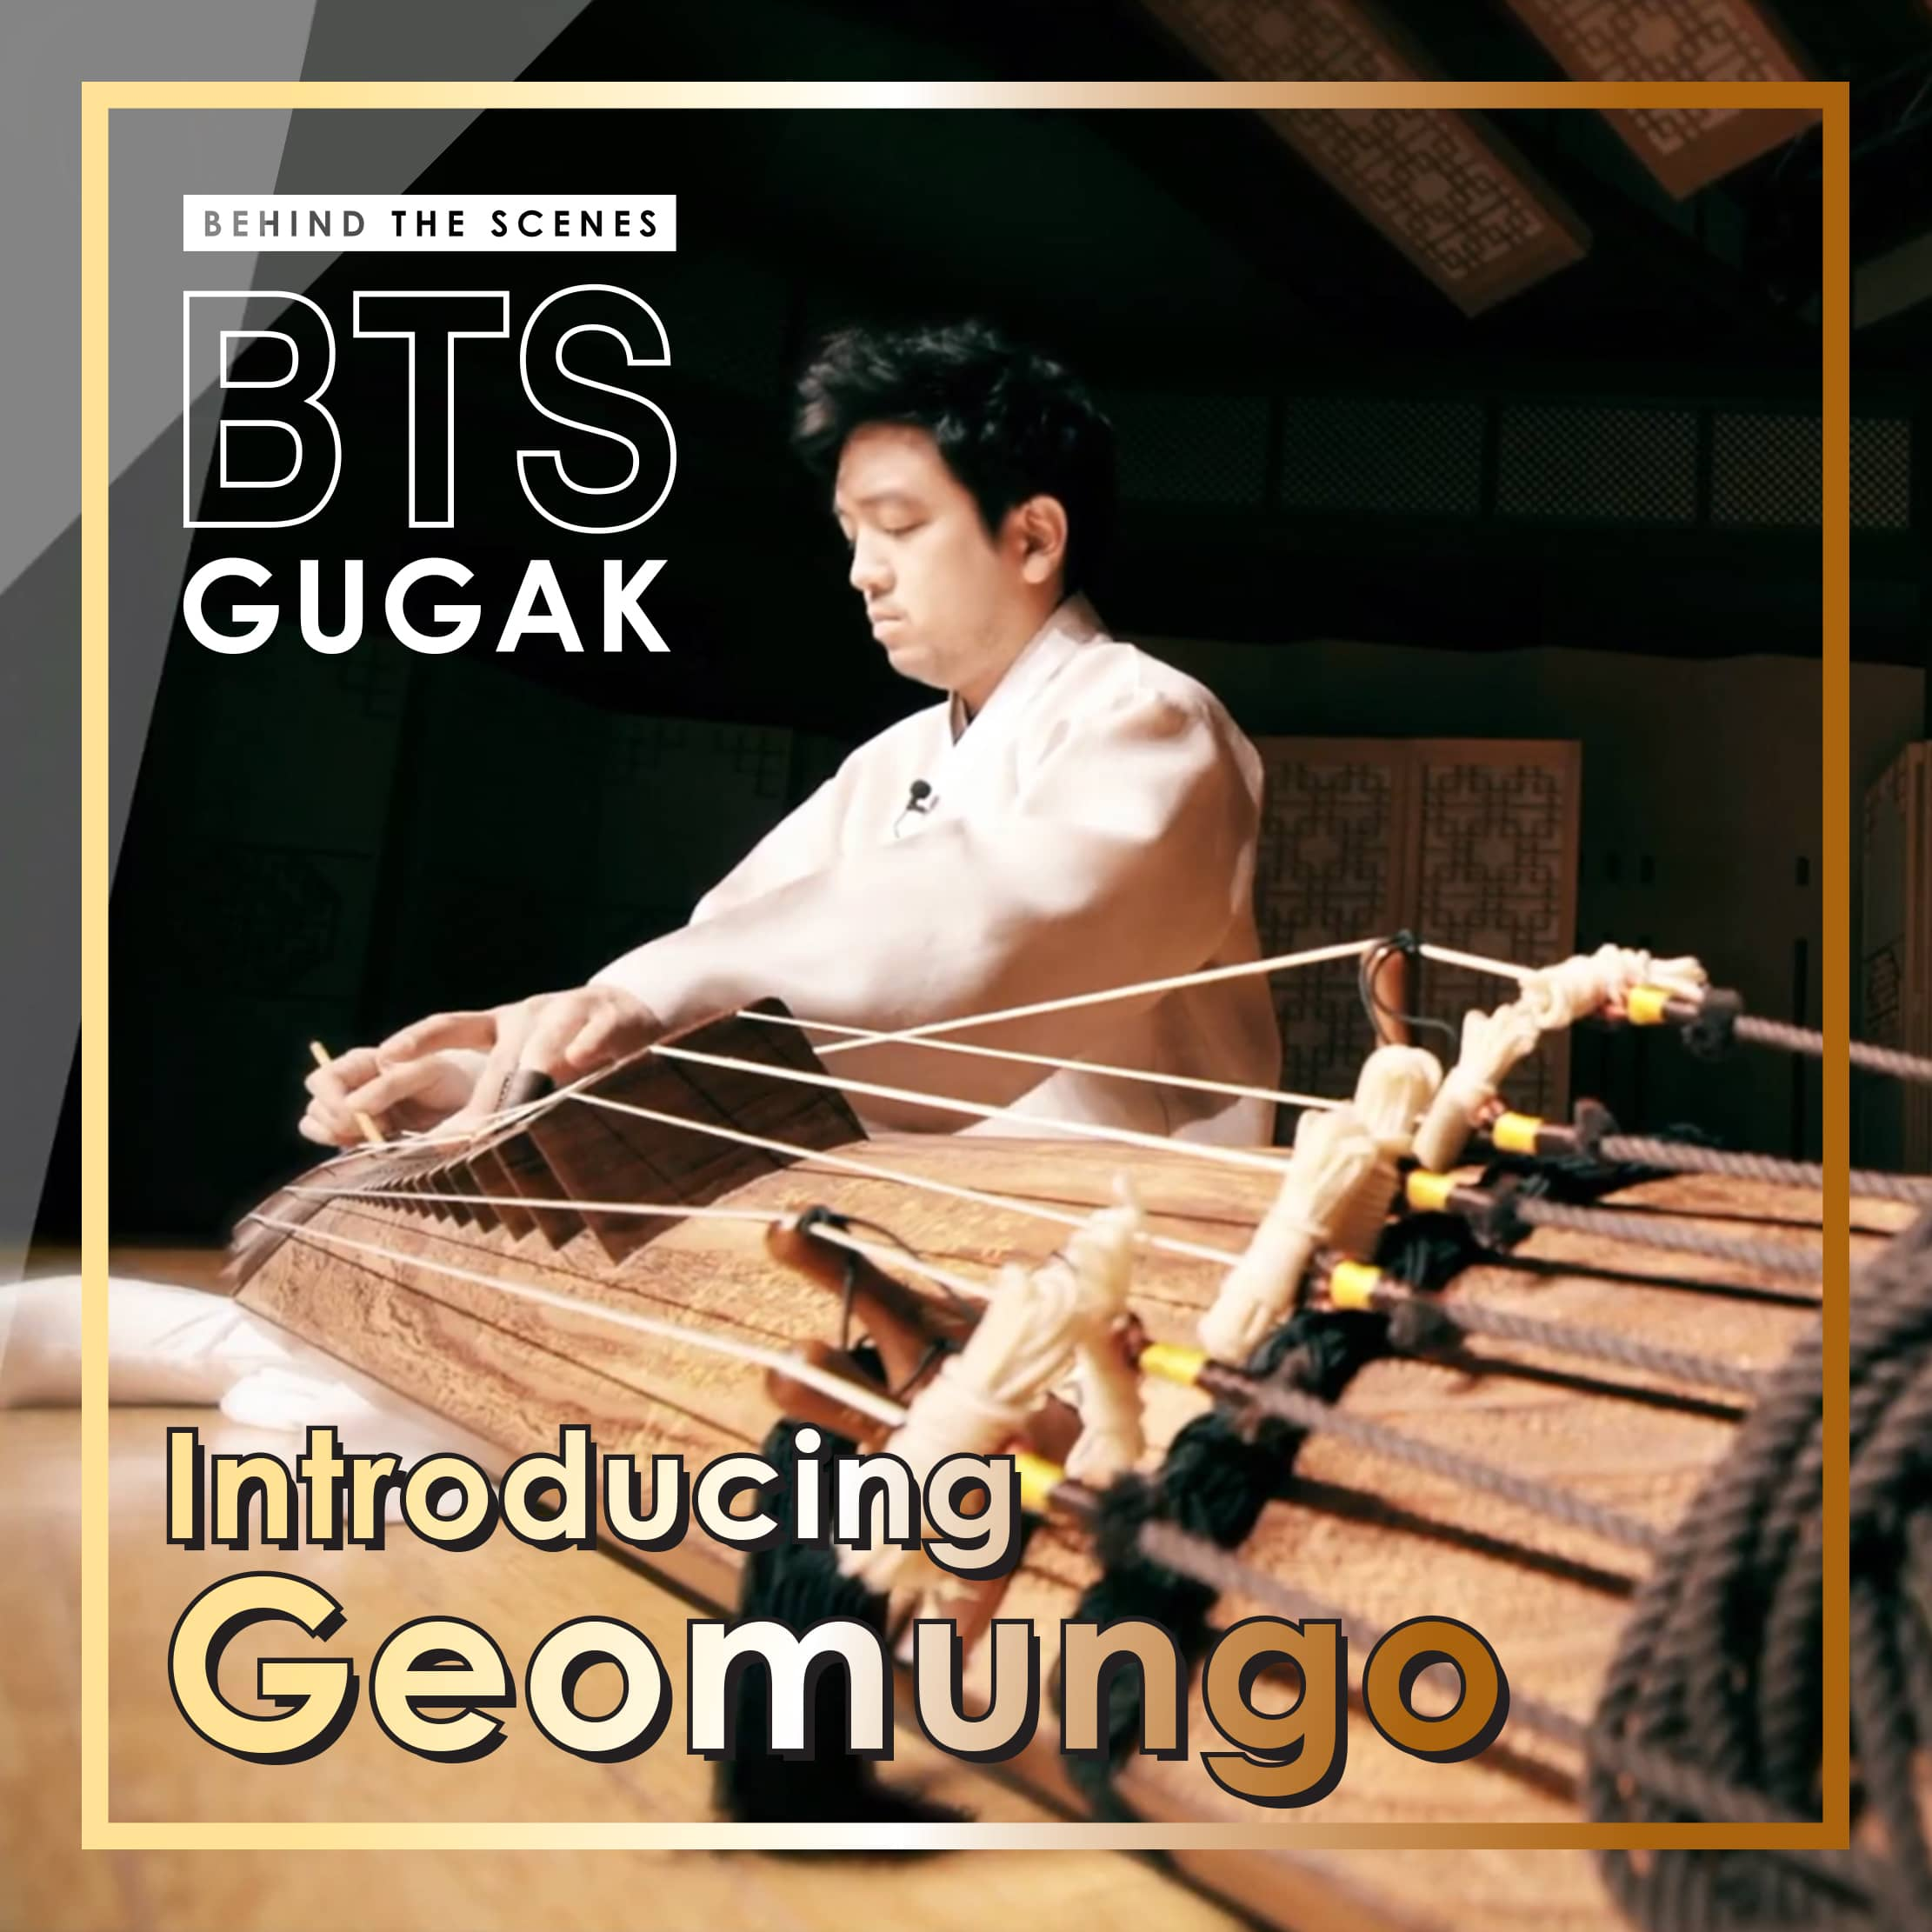 BTS Gugak EP. 2 Introducing Geomungo